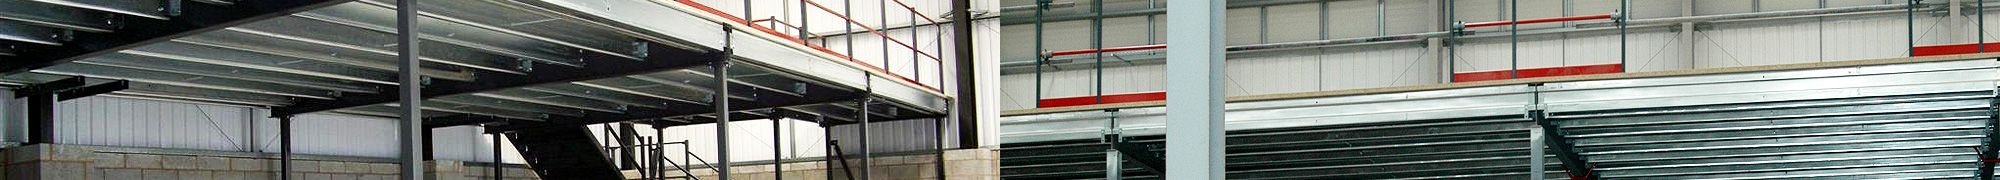 Mezzanines and mezzanine flooring fitted